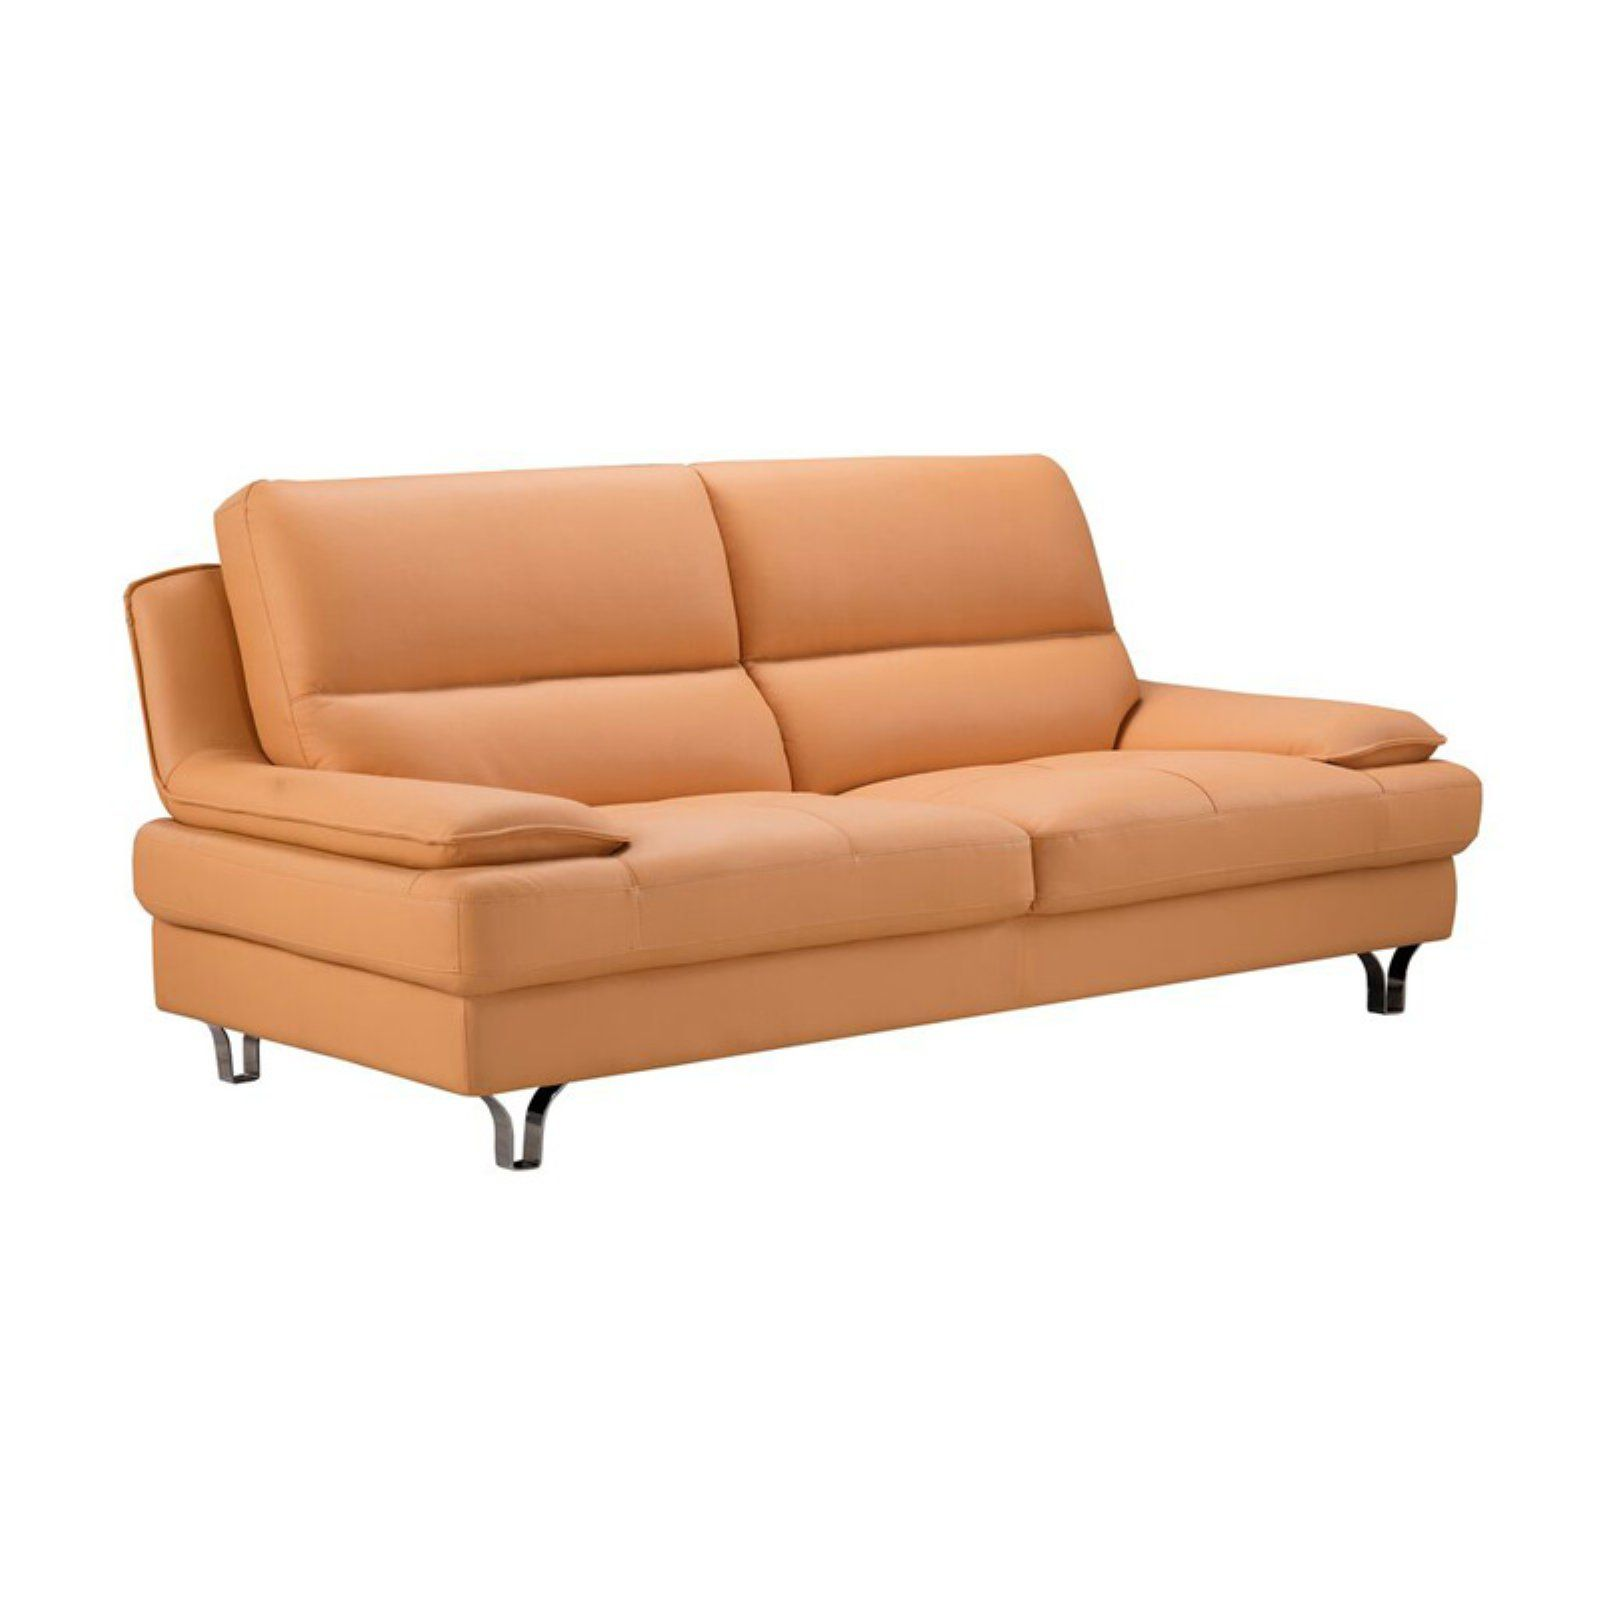 American Eagle Furniture Georgiana Leather Beige: American Eagle Furniture Harrison Sofa Yellow